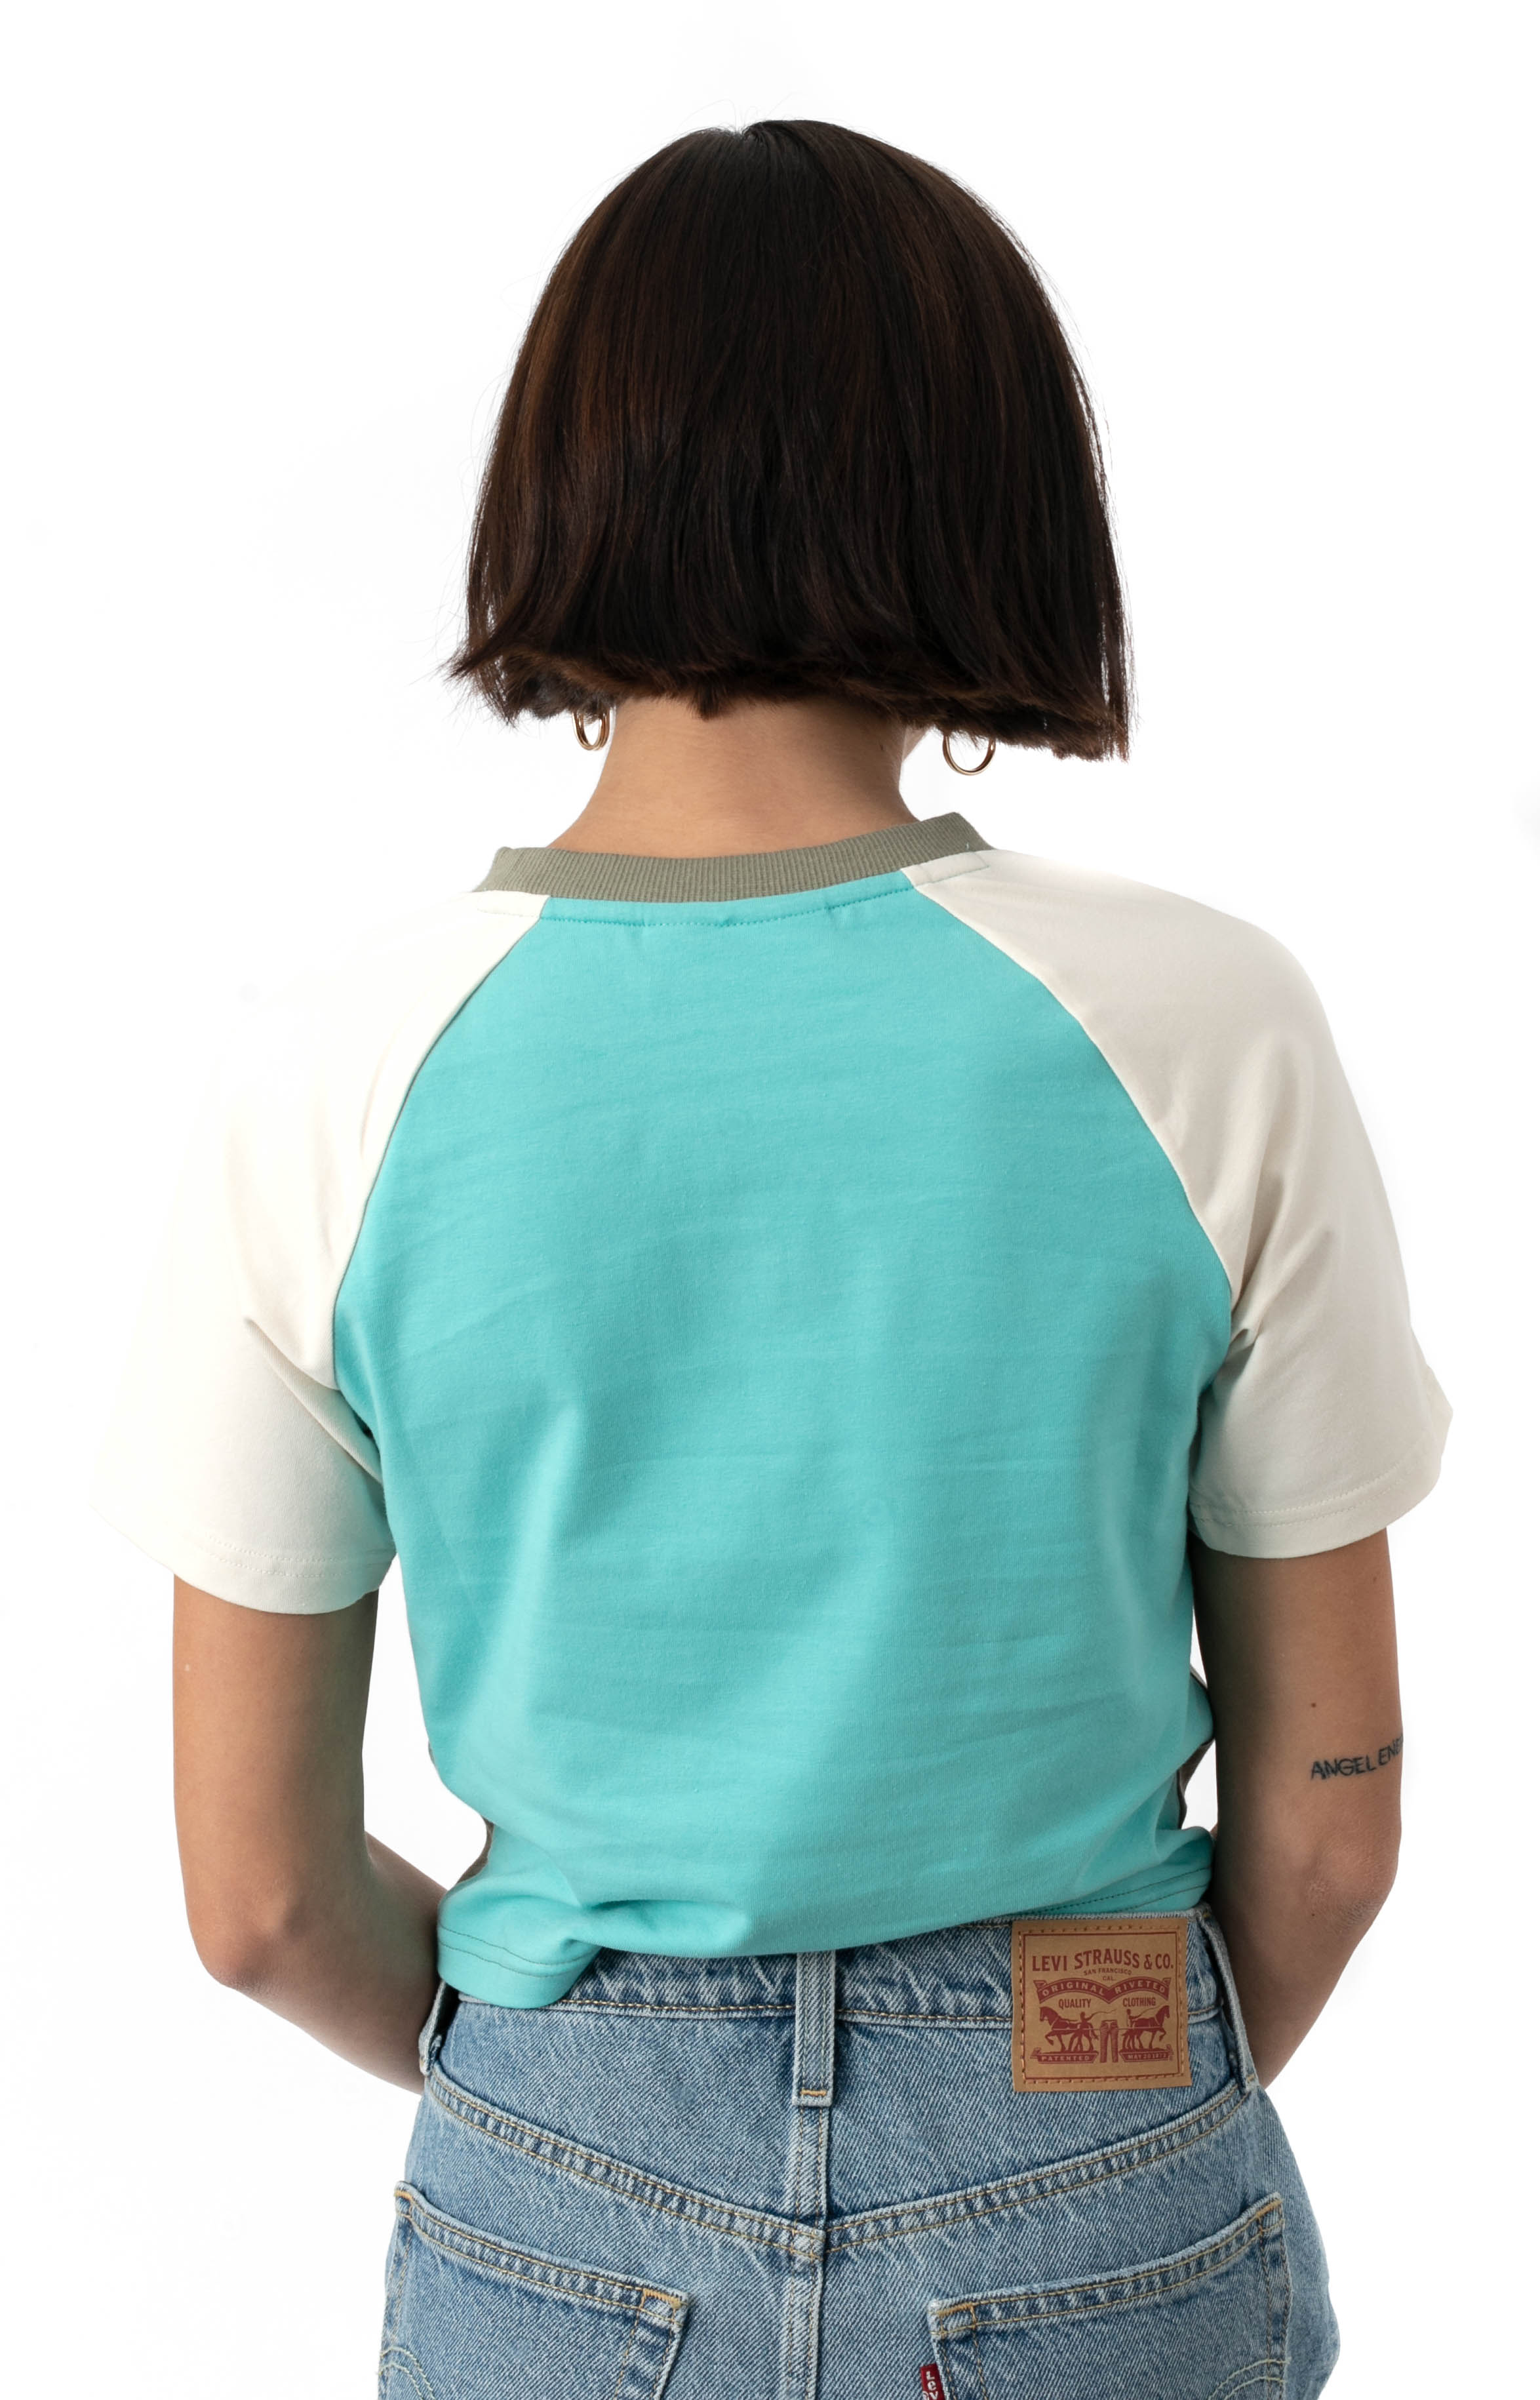 Aisha Crop Tee - Vetiver/Blue Turquoise 3